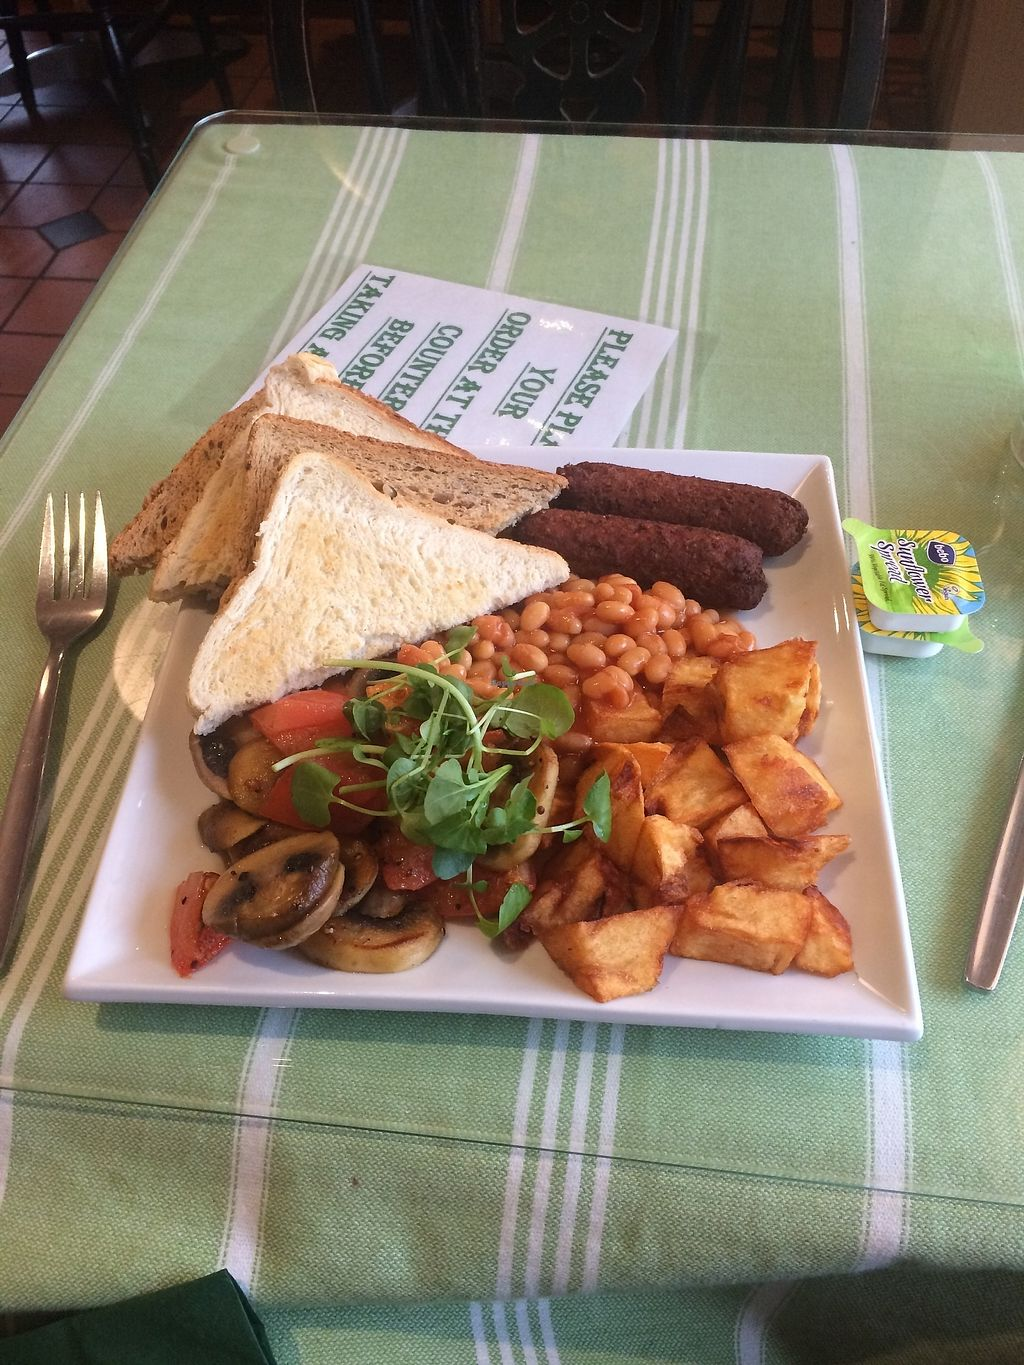 "Photo of The Eating House  by <a href=""/members/profile/washcat"">washcat</a> <br/>Vegan English Breakfast <br/> November 12, 2017  - <a href='/contact/abuse/image/104080/324834'>Report</a>"